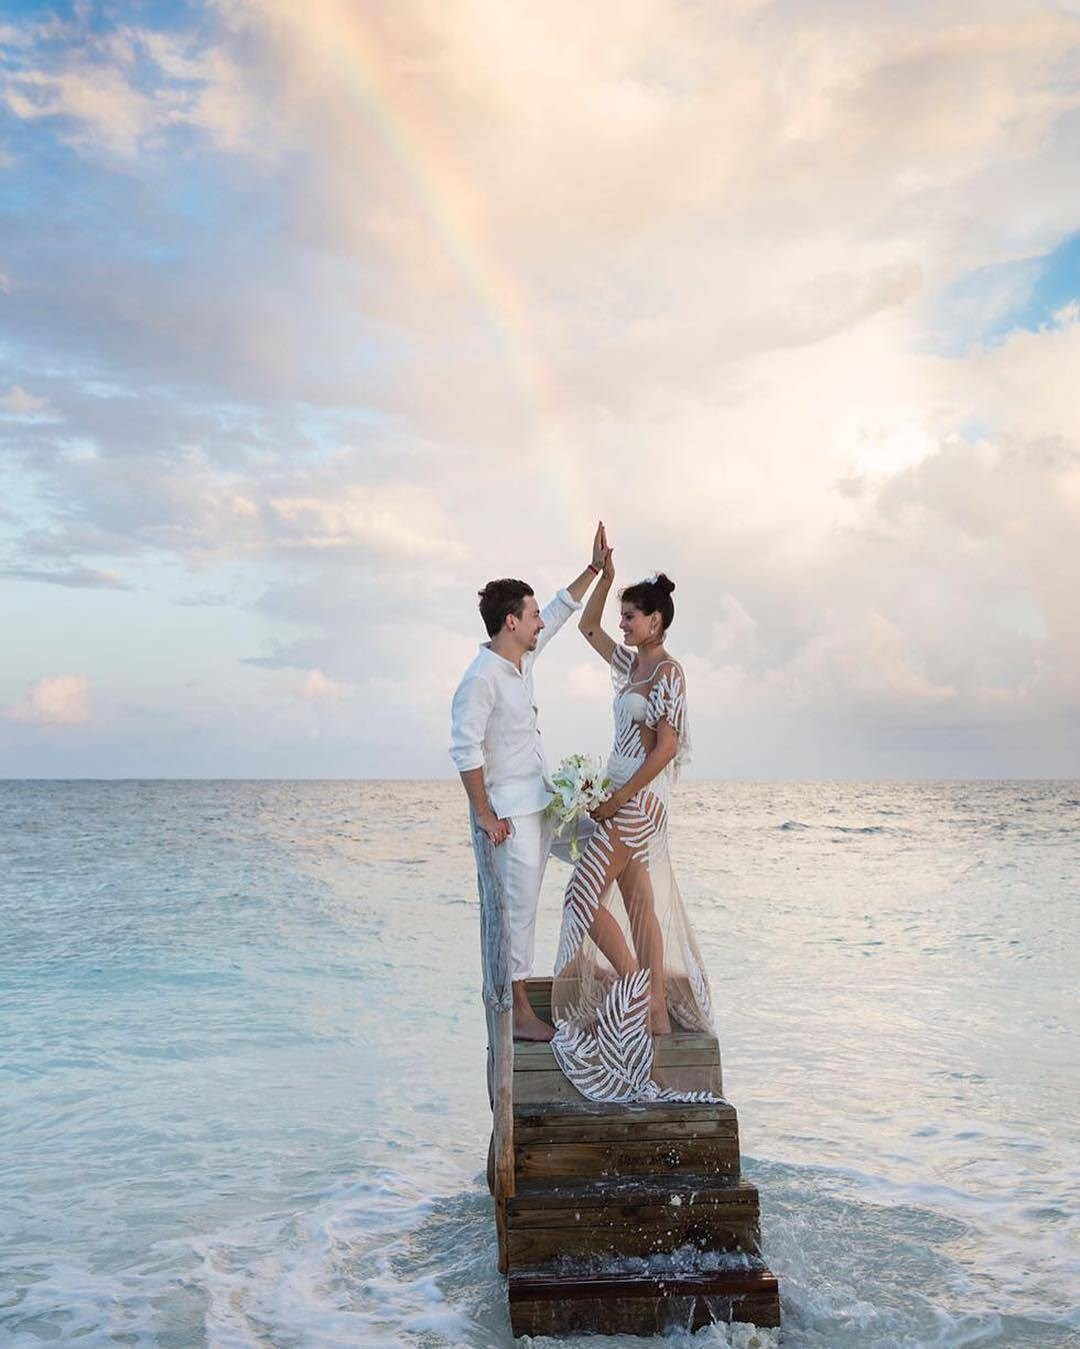 "<p> Model Isabeli Fontana married Diego Ferrero in the Maldives this week wearing a Agua De Coco bikini.<p> <p> Image via <a href=""https://www.instagram.com/voguenoiva/"">Vogue Noiva</a>."